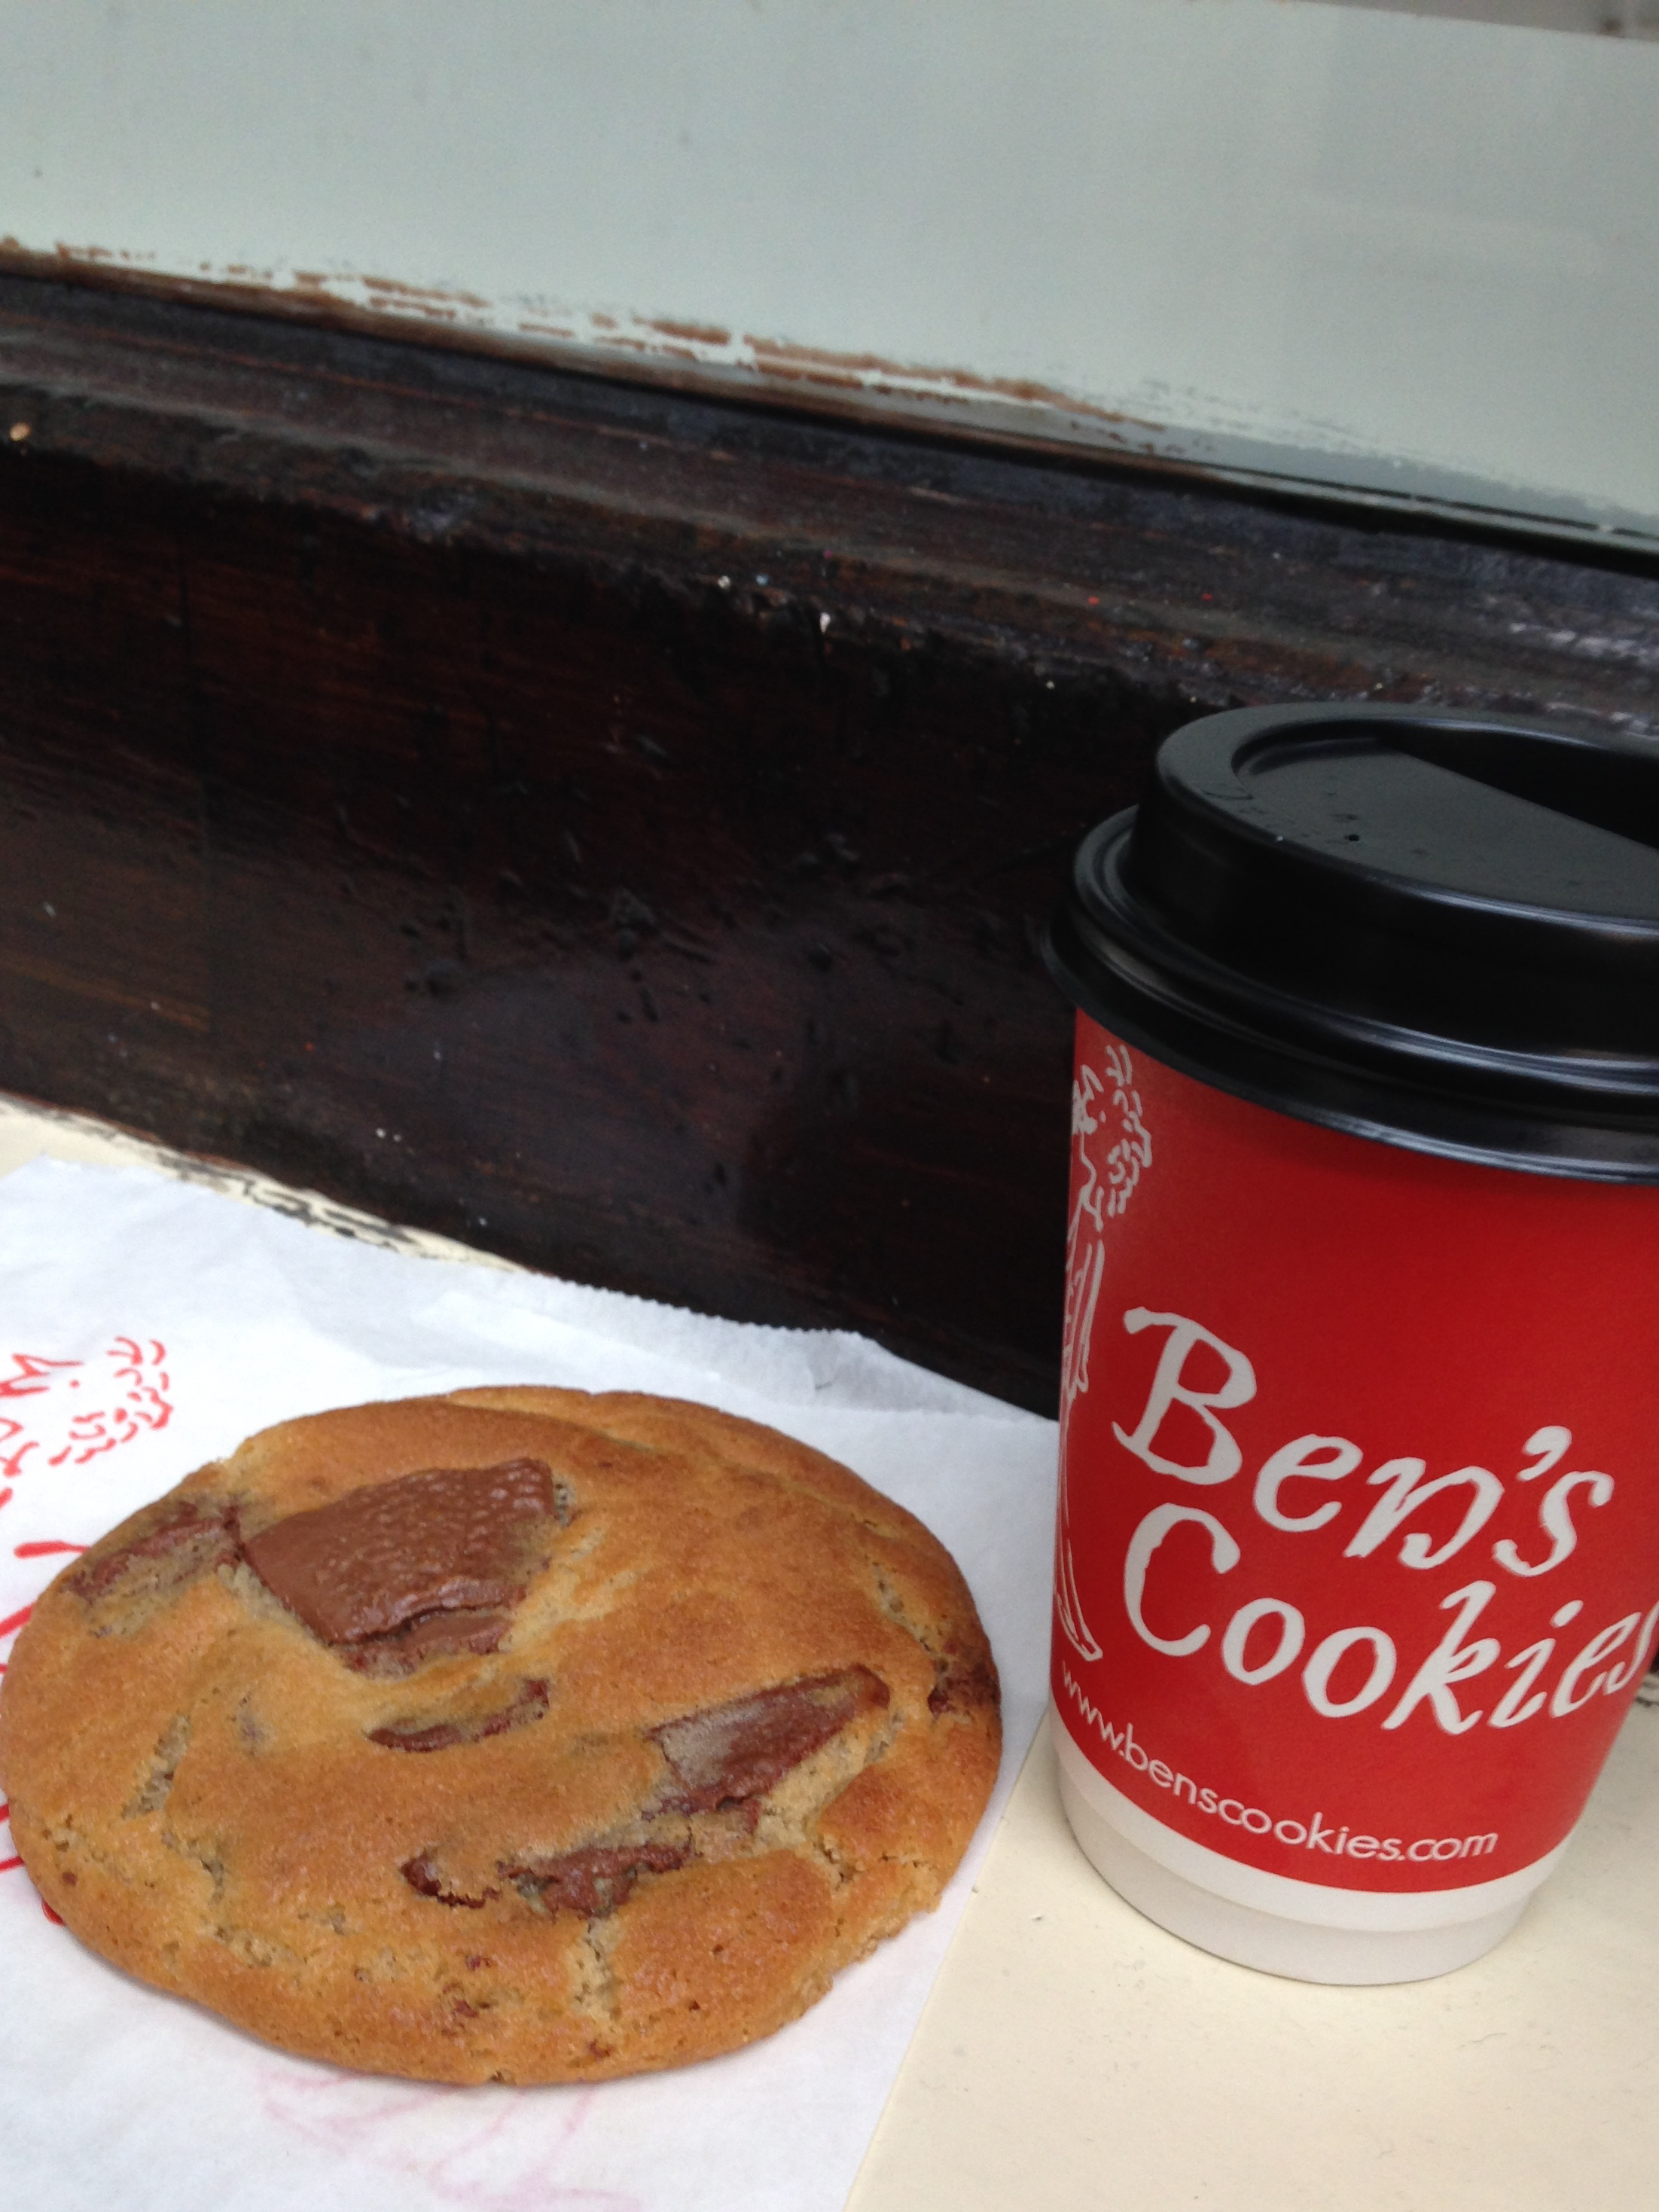 Ben's Cookies in Covent Garden